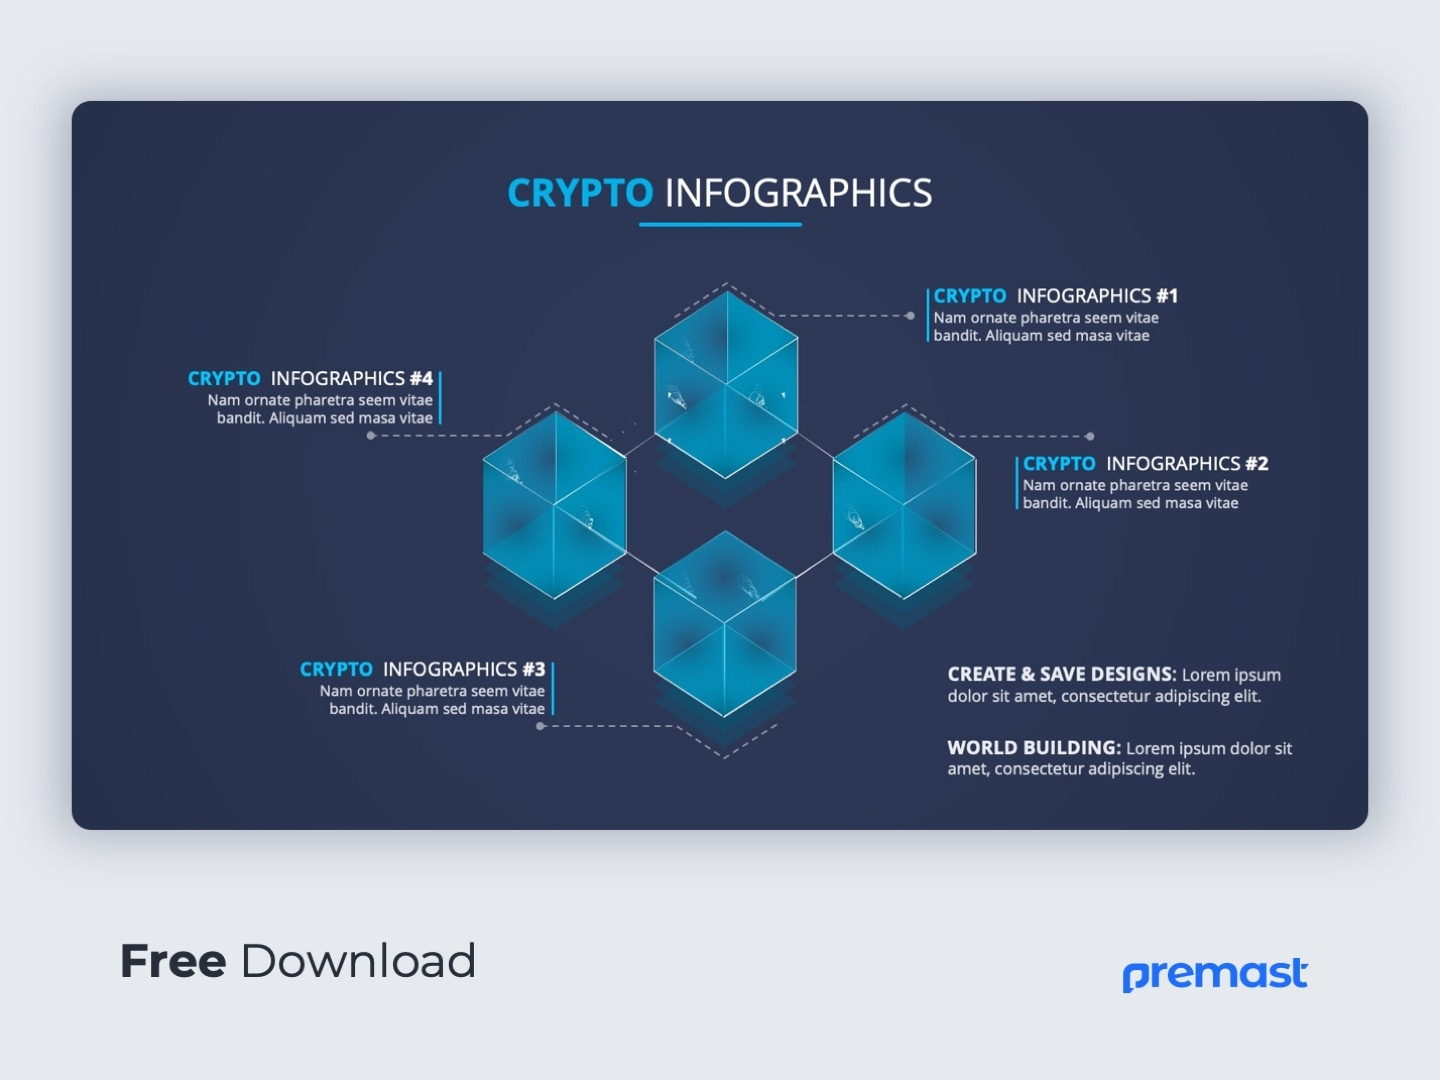 Crypto Business Infographic PowerPoint template by Premast on Dribbble